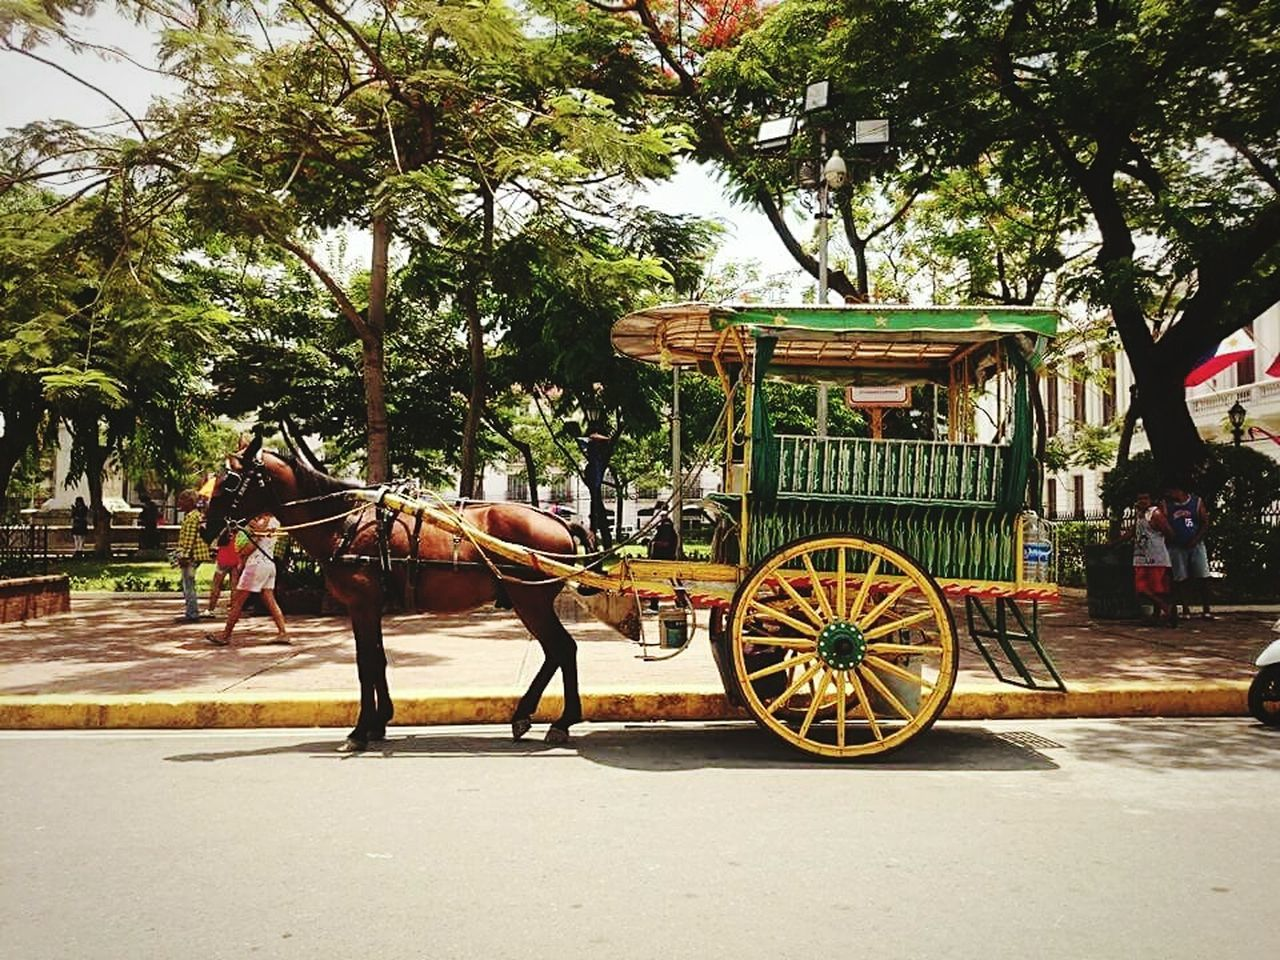 Fancy a ride? 🐴 Horse-drawn Carriage Kalesa Intramuros, Manila Manila, Philippines Eyeem Philippines EyeEm Manila Feel The Journey Showcase June On The Way Hidden Gems  Eyeemphoto